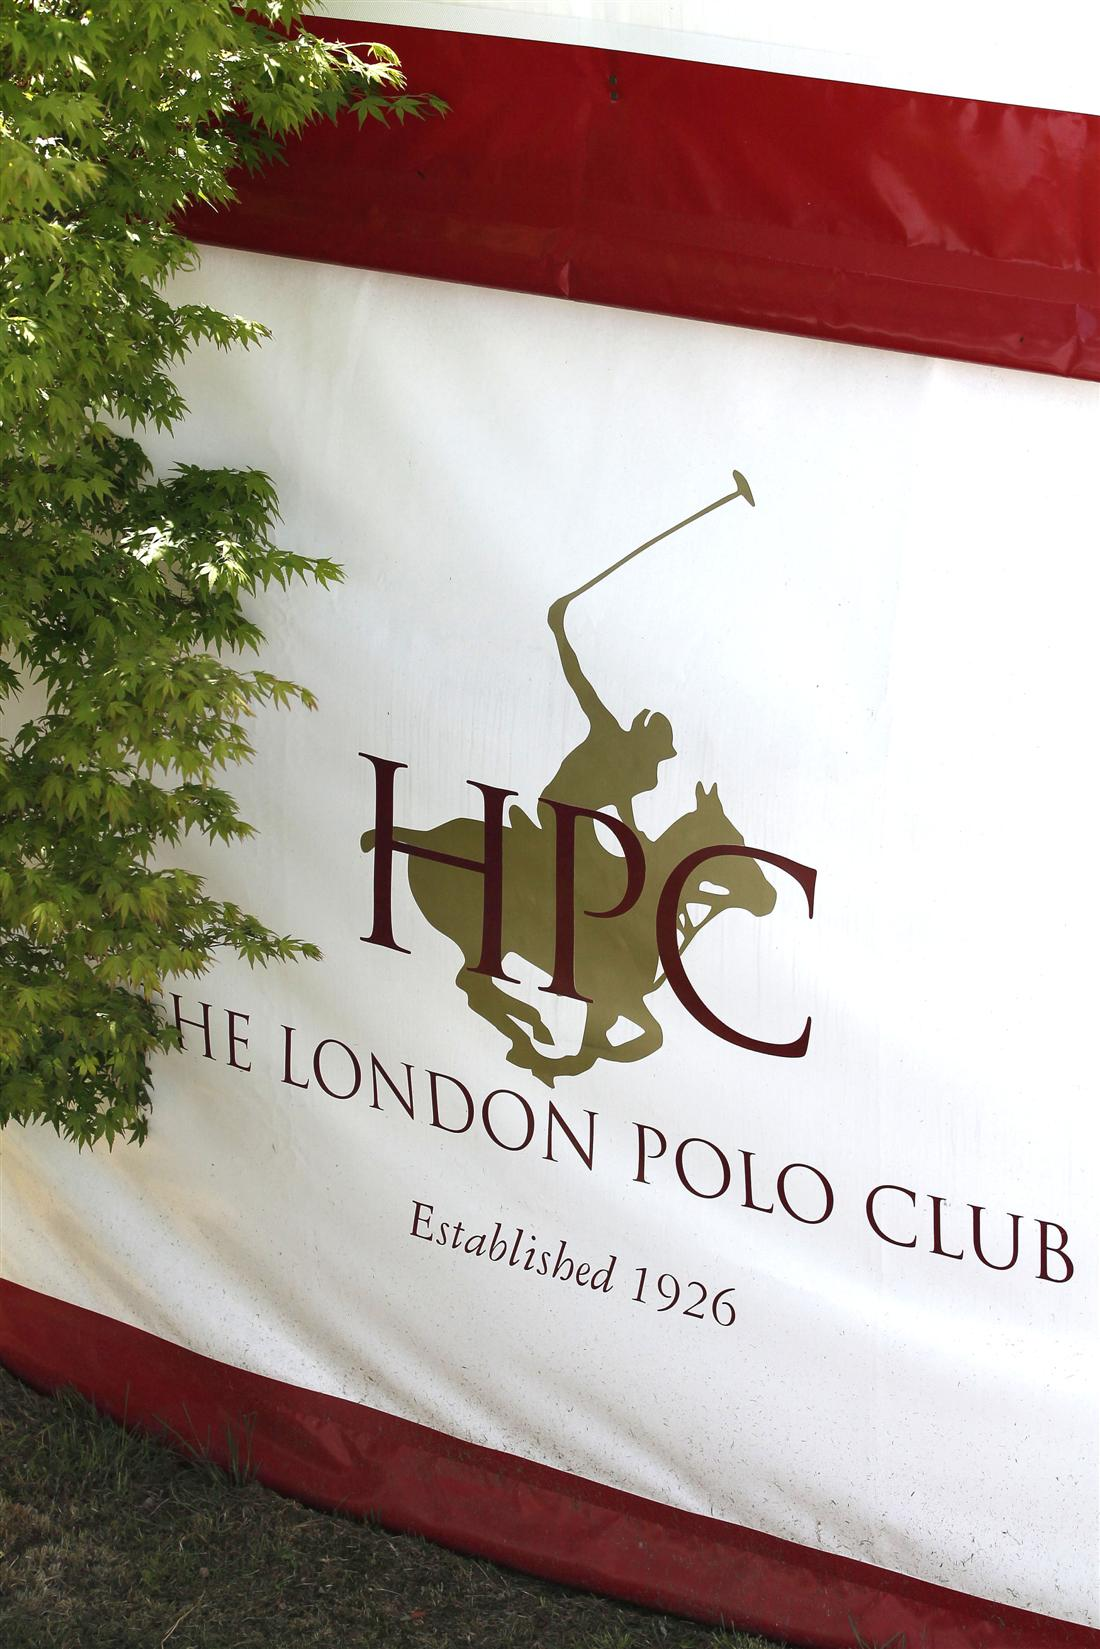 Pictures from last Sunday at Ham Polo Club